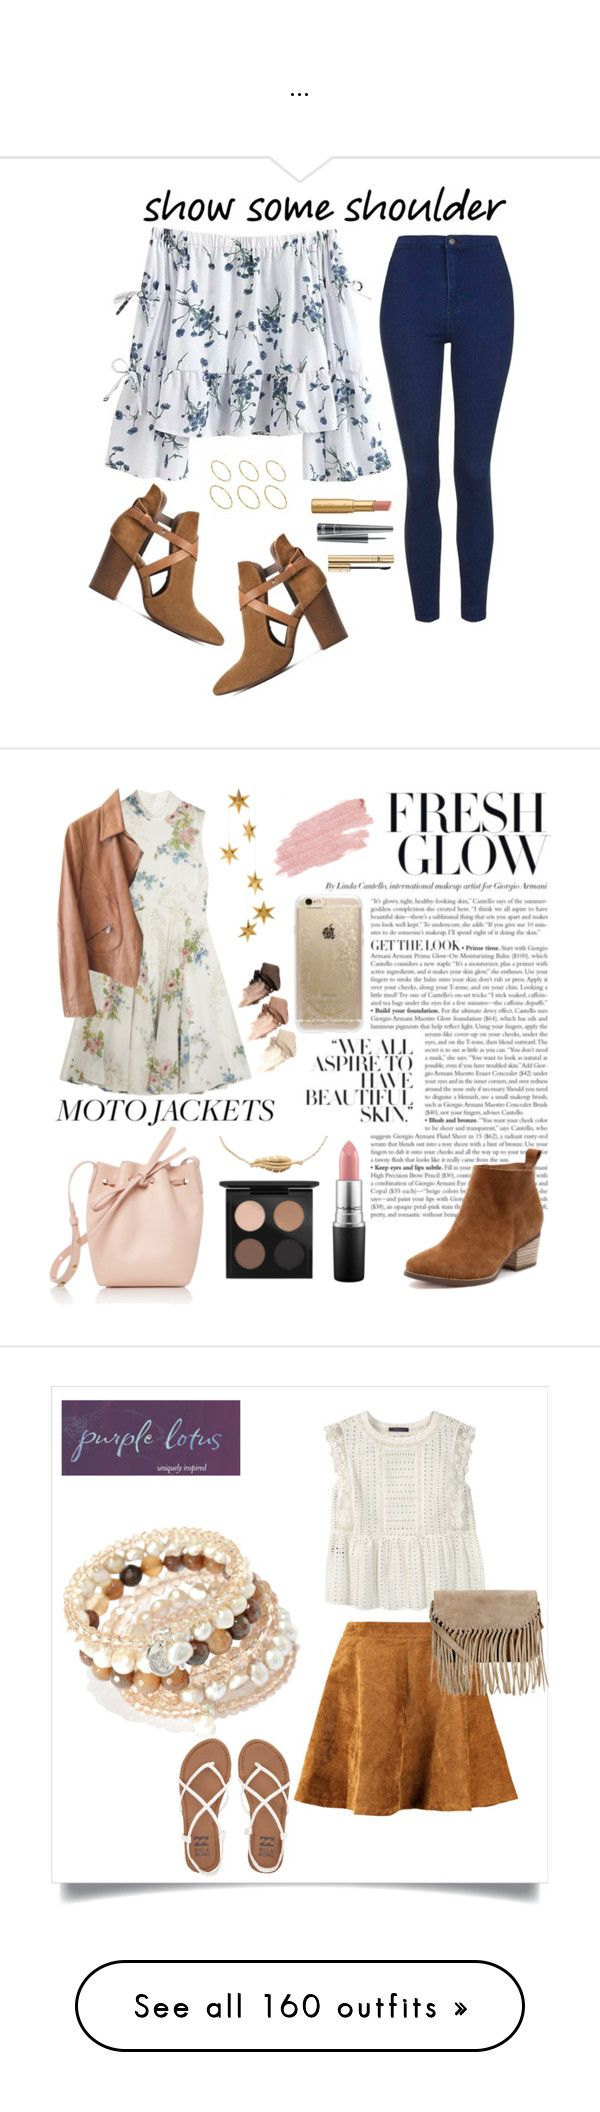 """..."" by aylin-schroeder on Polyvore featuring Mode, Topshop, H London, ASOS, D&G, MAC Cosmetics, Too Faced Cosmetics, Topshop Unique, Armani Collezioni und Mansur Gavriel"